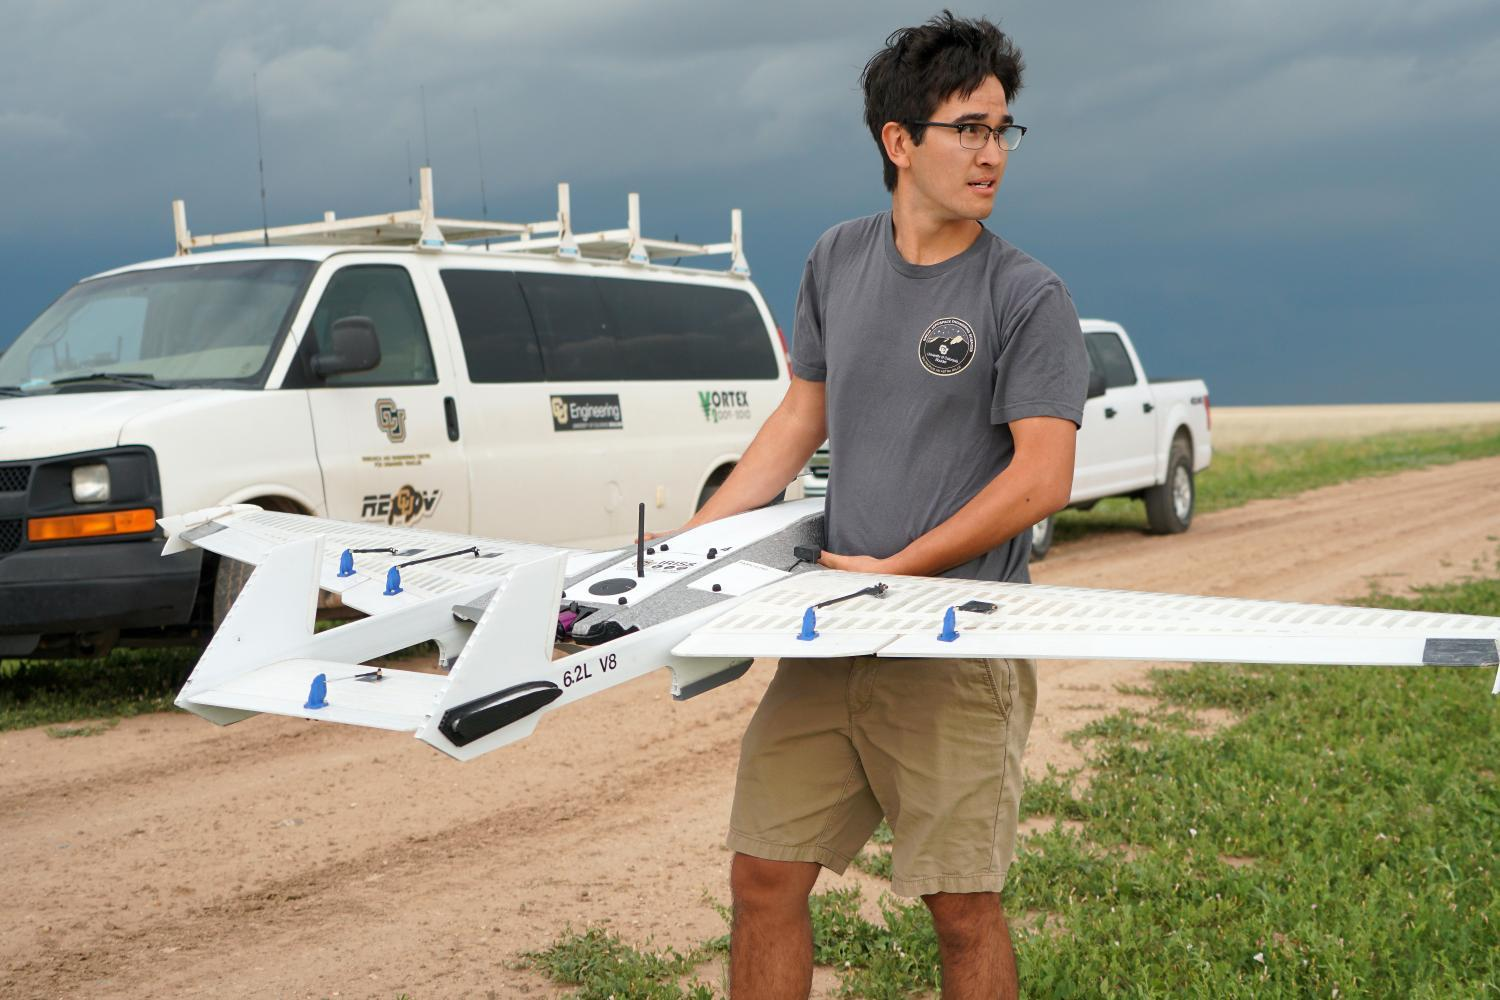 RAAVEN unmanned aircraft system in the hands of graduate researcher Alex Hirst